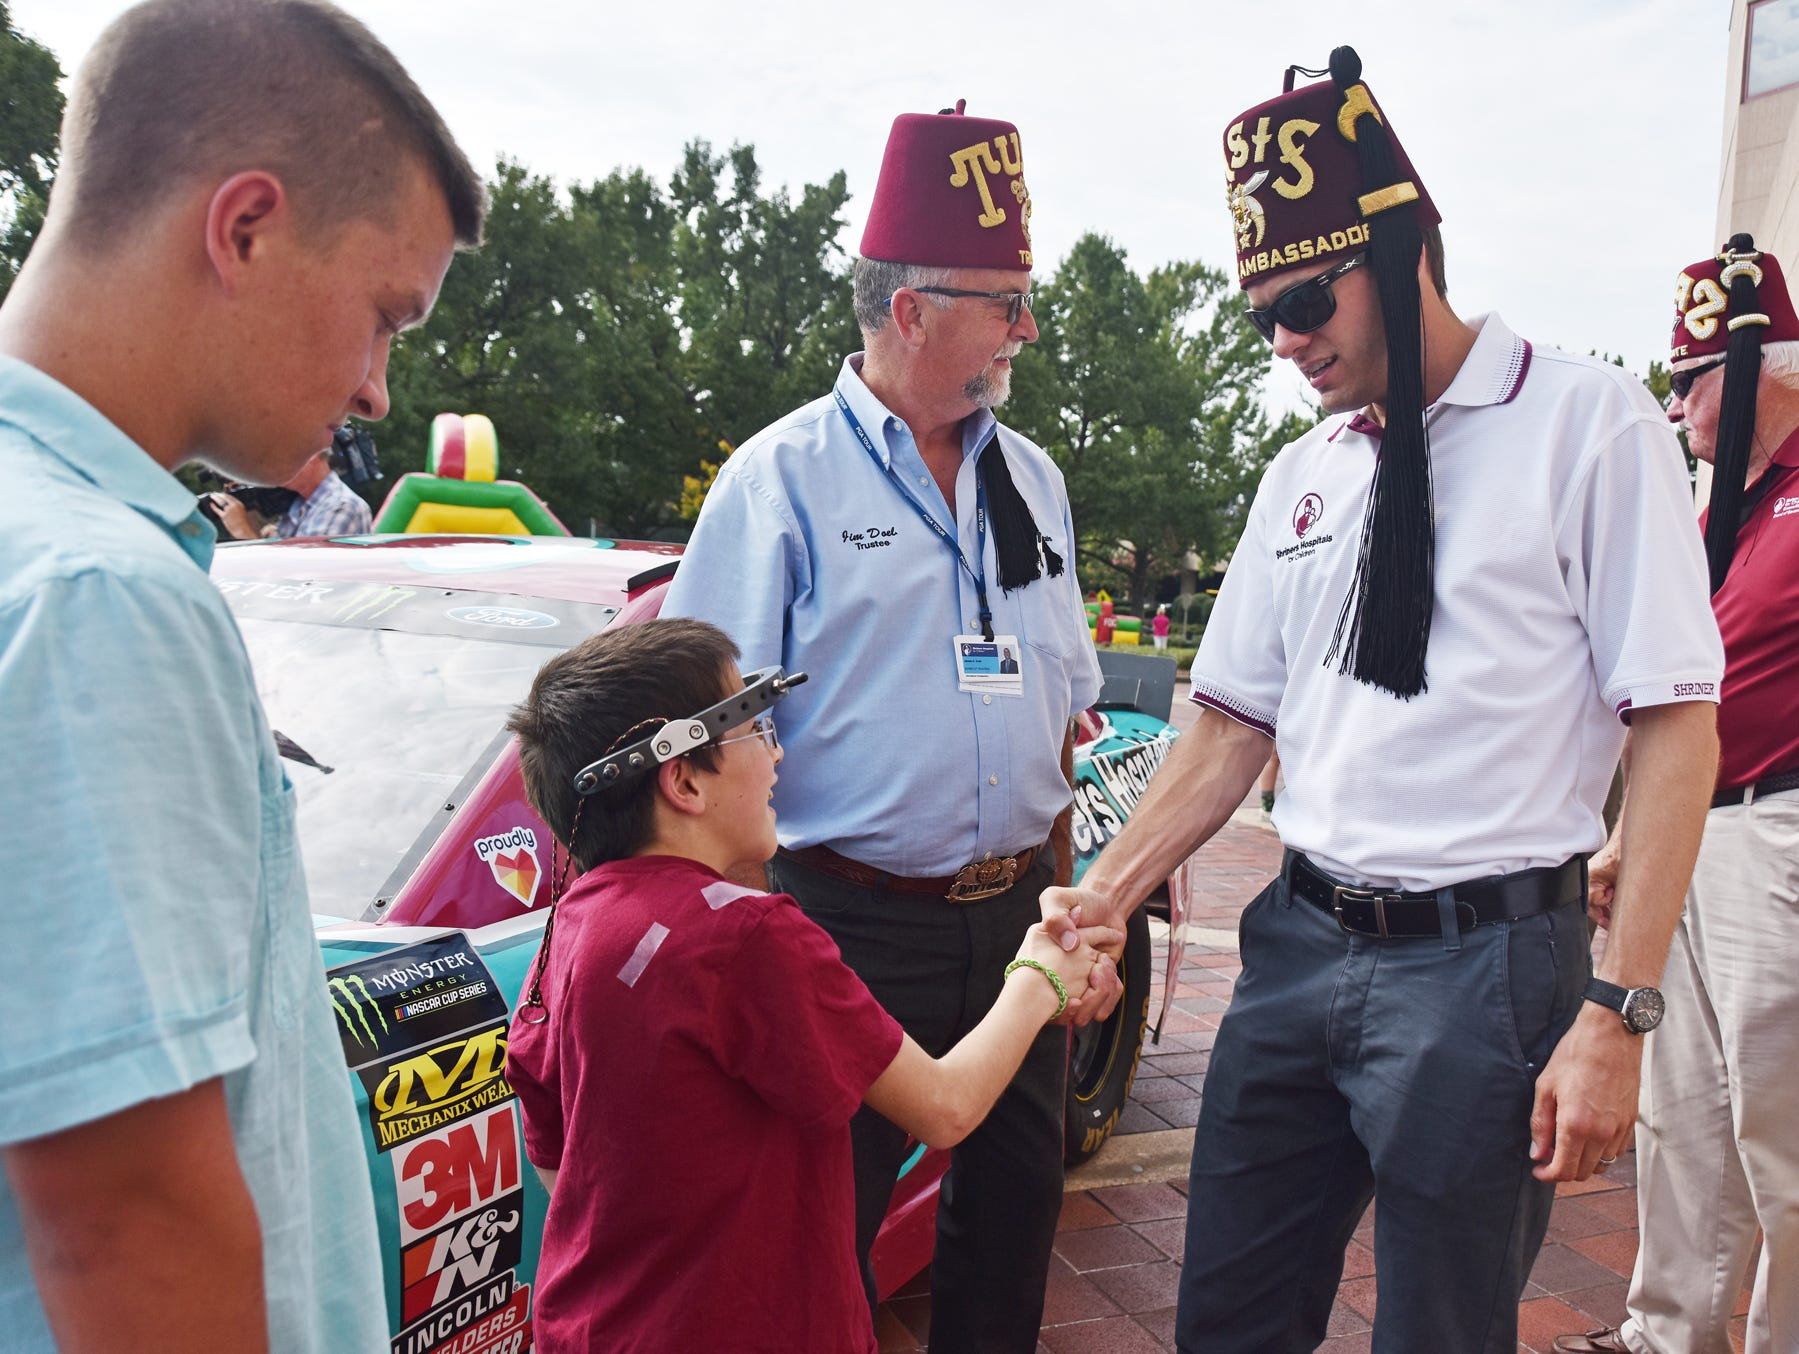 NASCAR driver David Ragan shakes hands with Grayson Lusk, 11, at the Shriners Hospital for Children in Greenville on August 15, 2018.